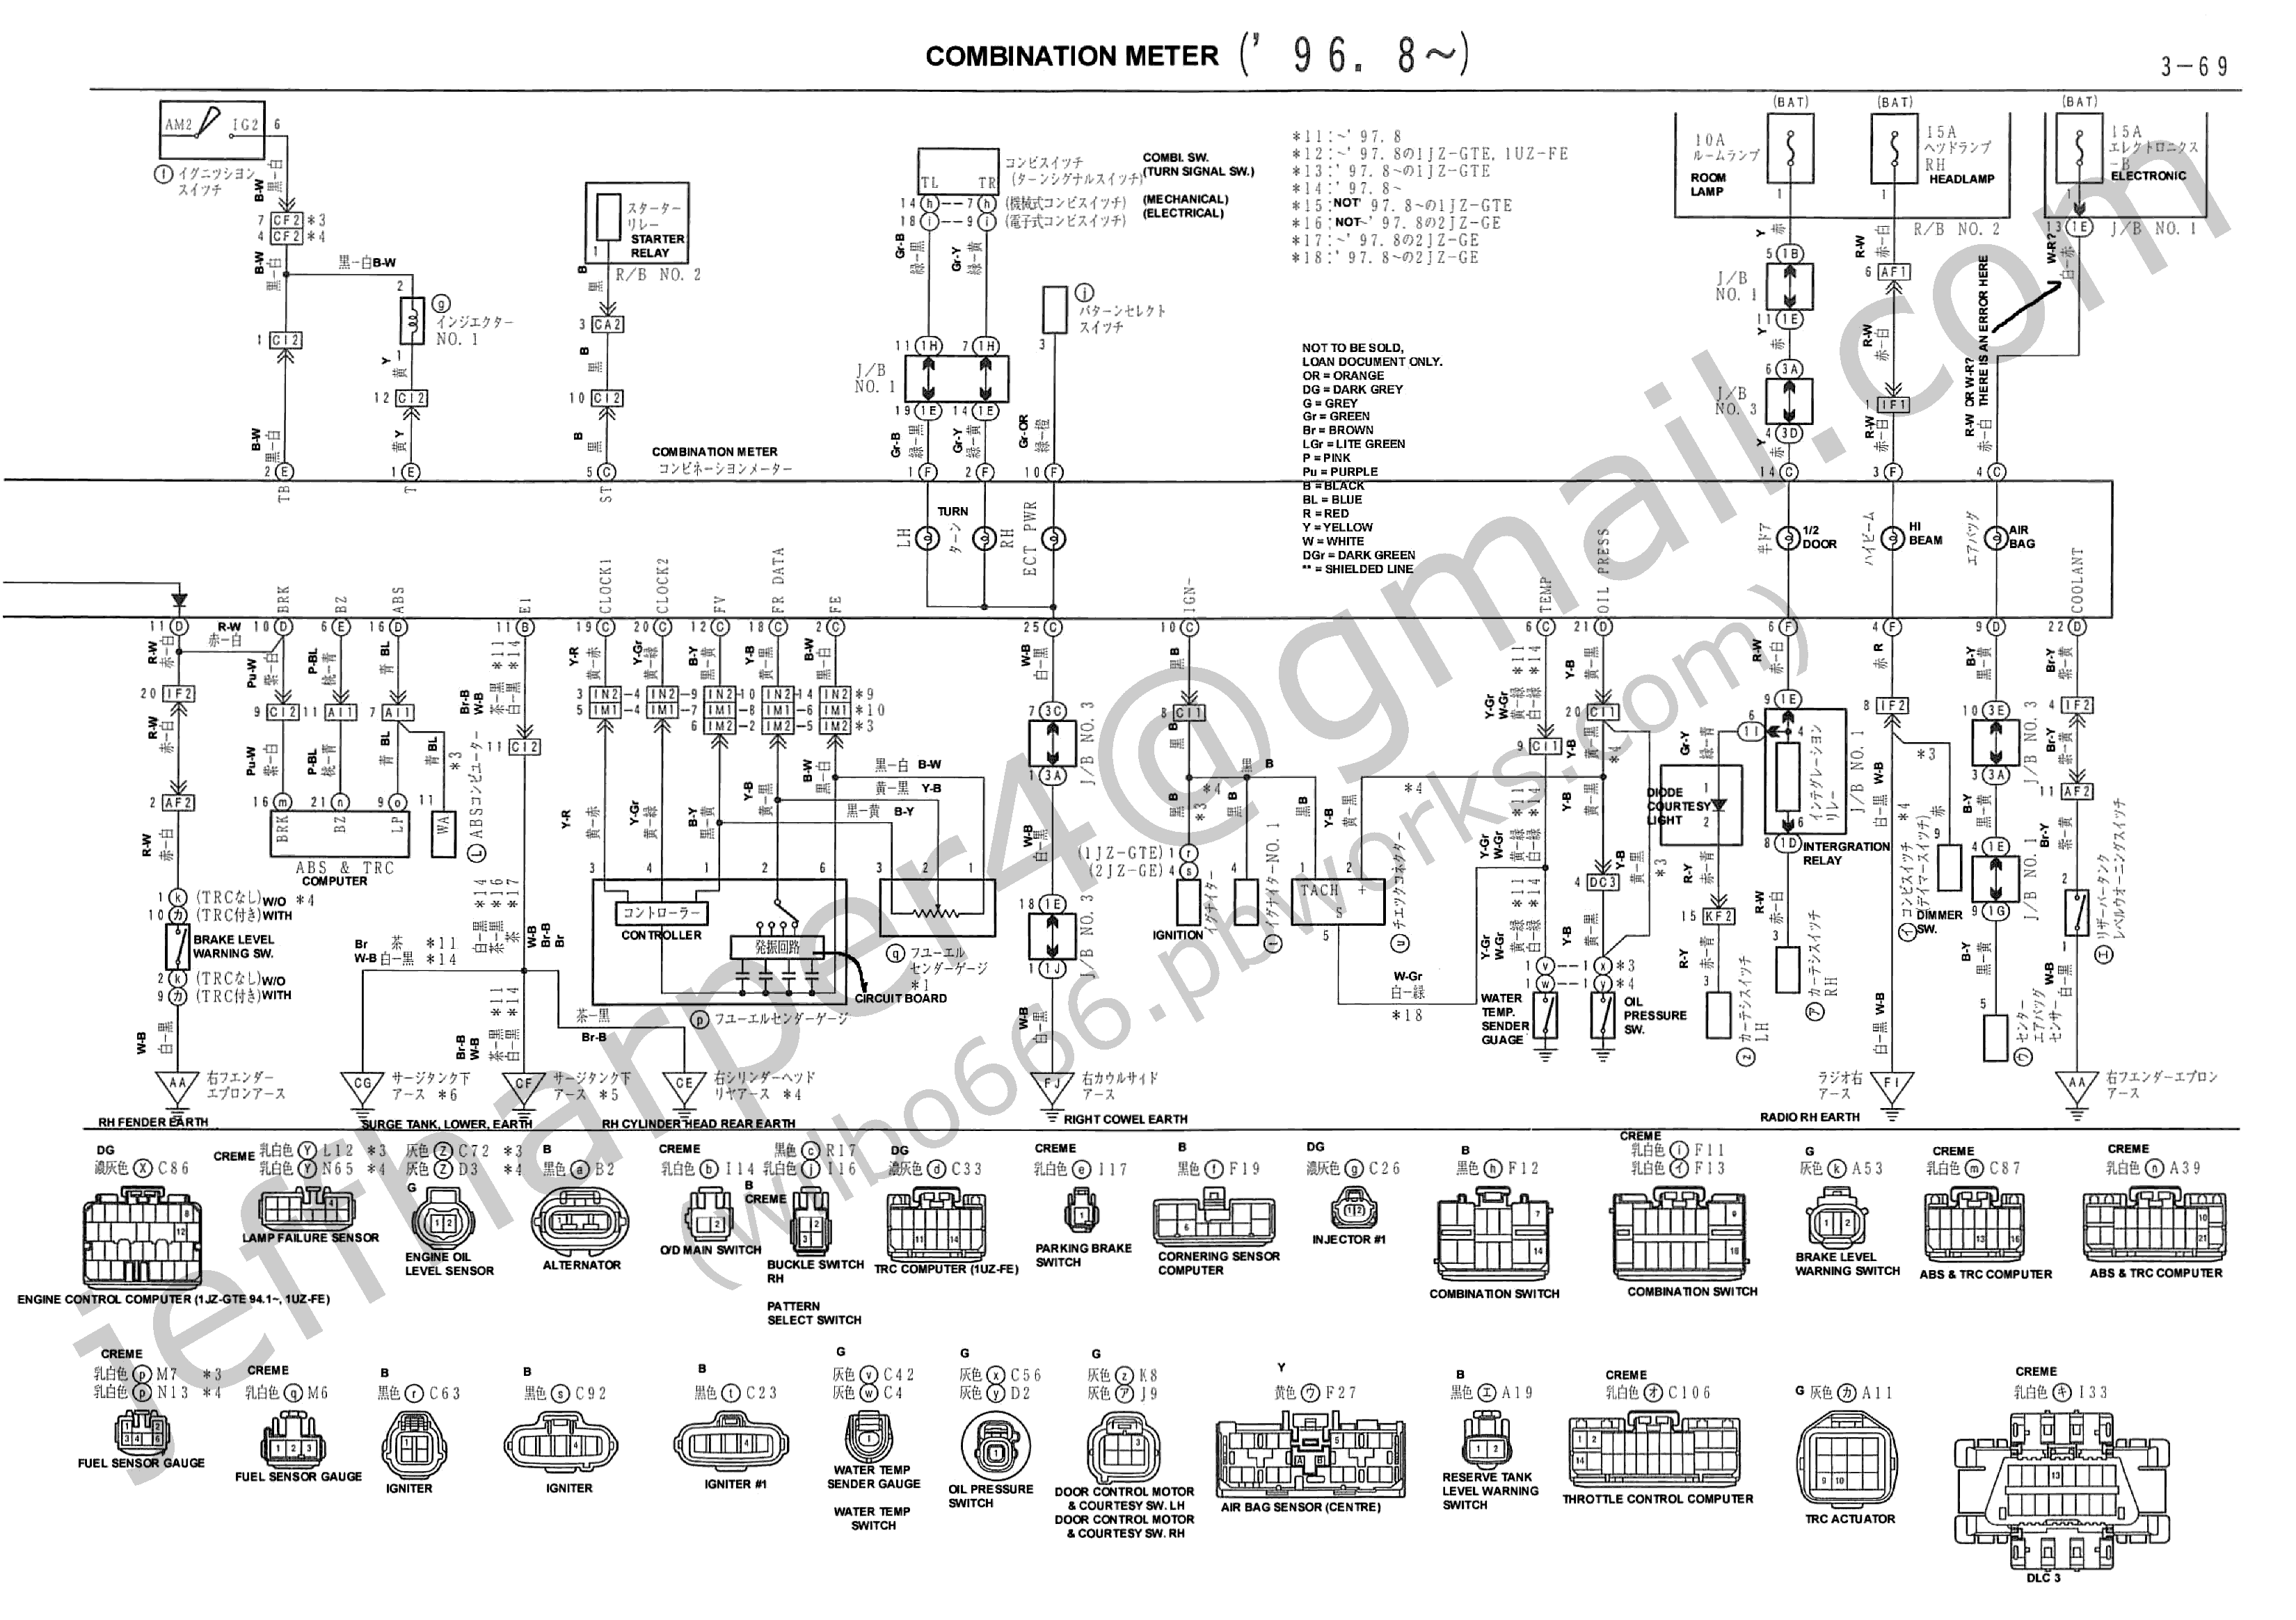 1jz ignition diagram wilbo666 / 1jz-gte jzz30 soarer engine wiring 1jz engine diagram